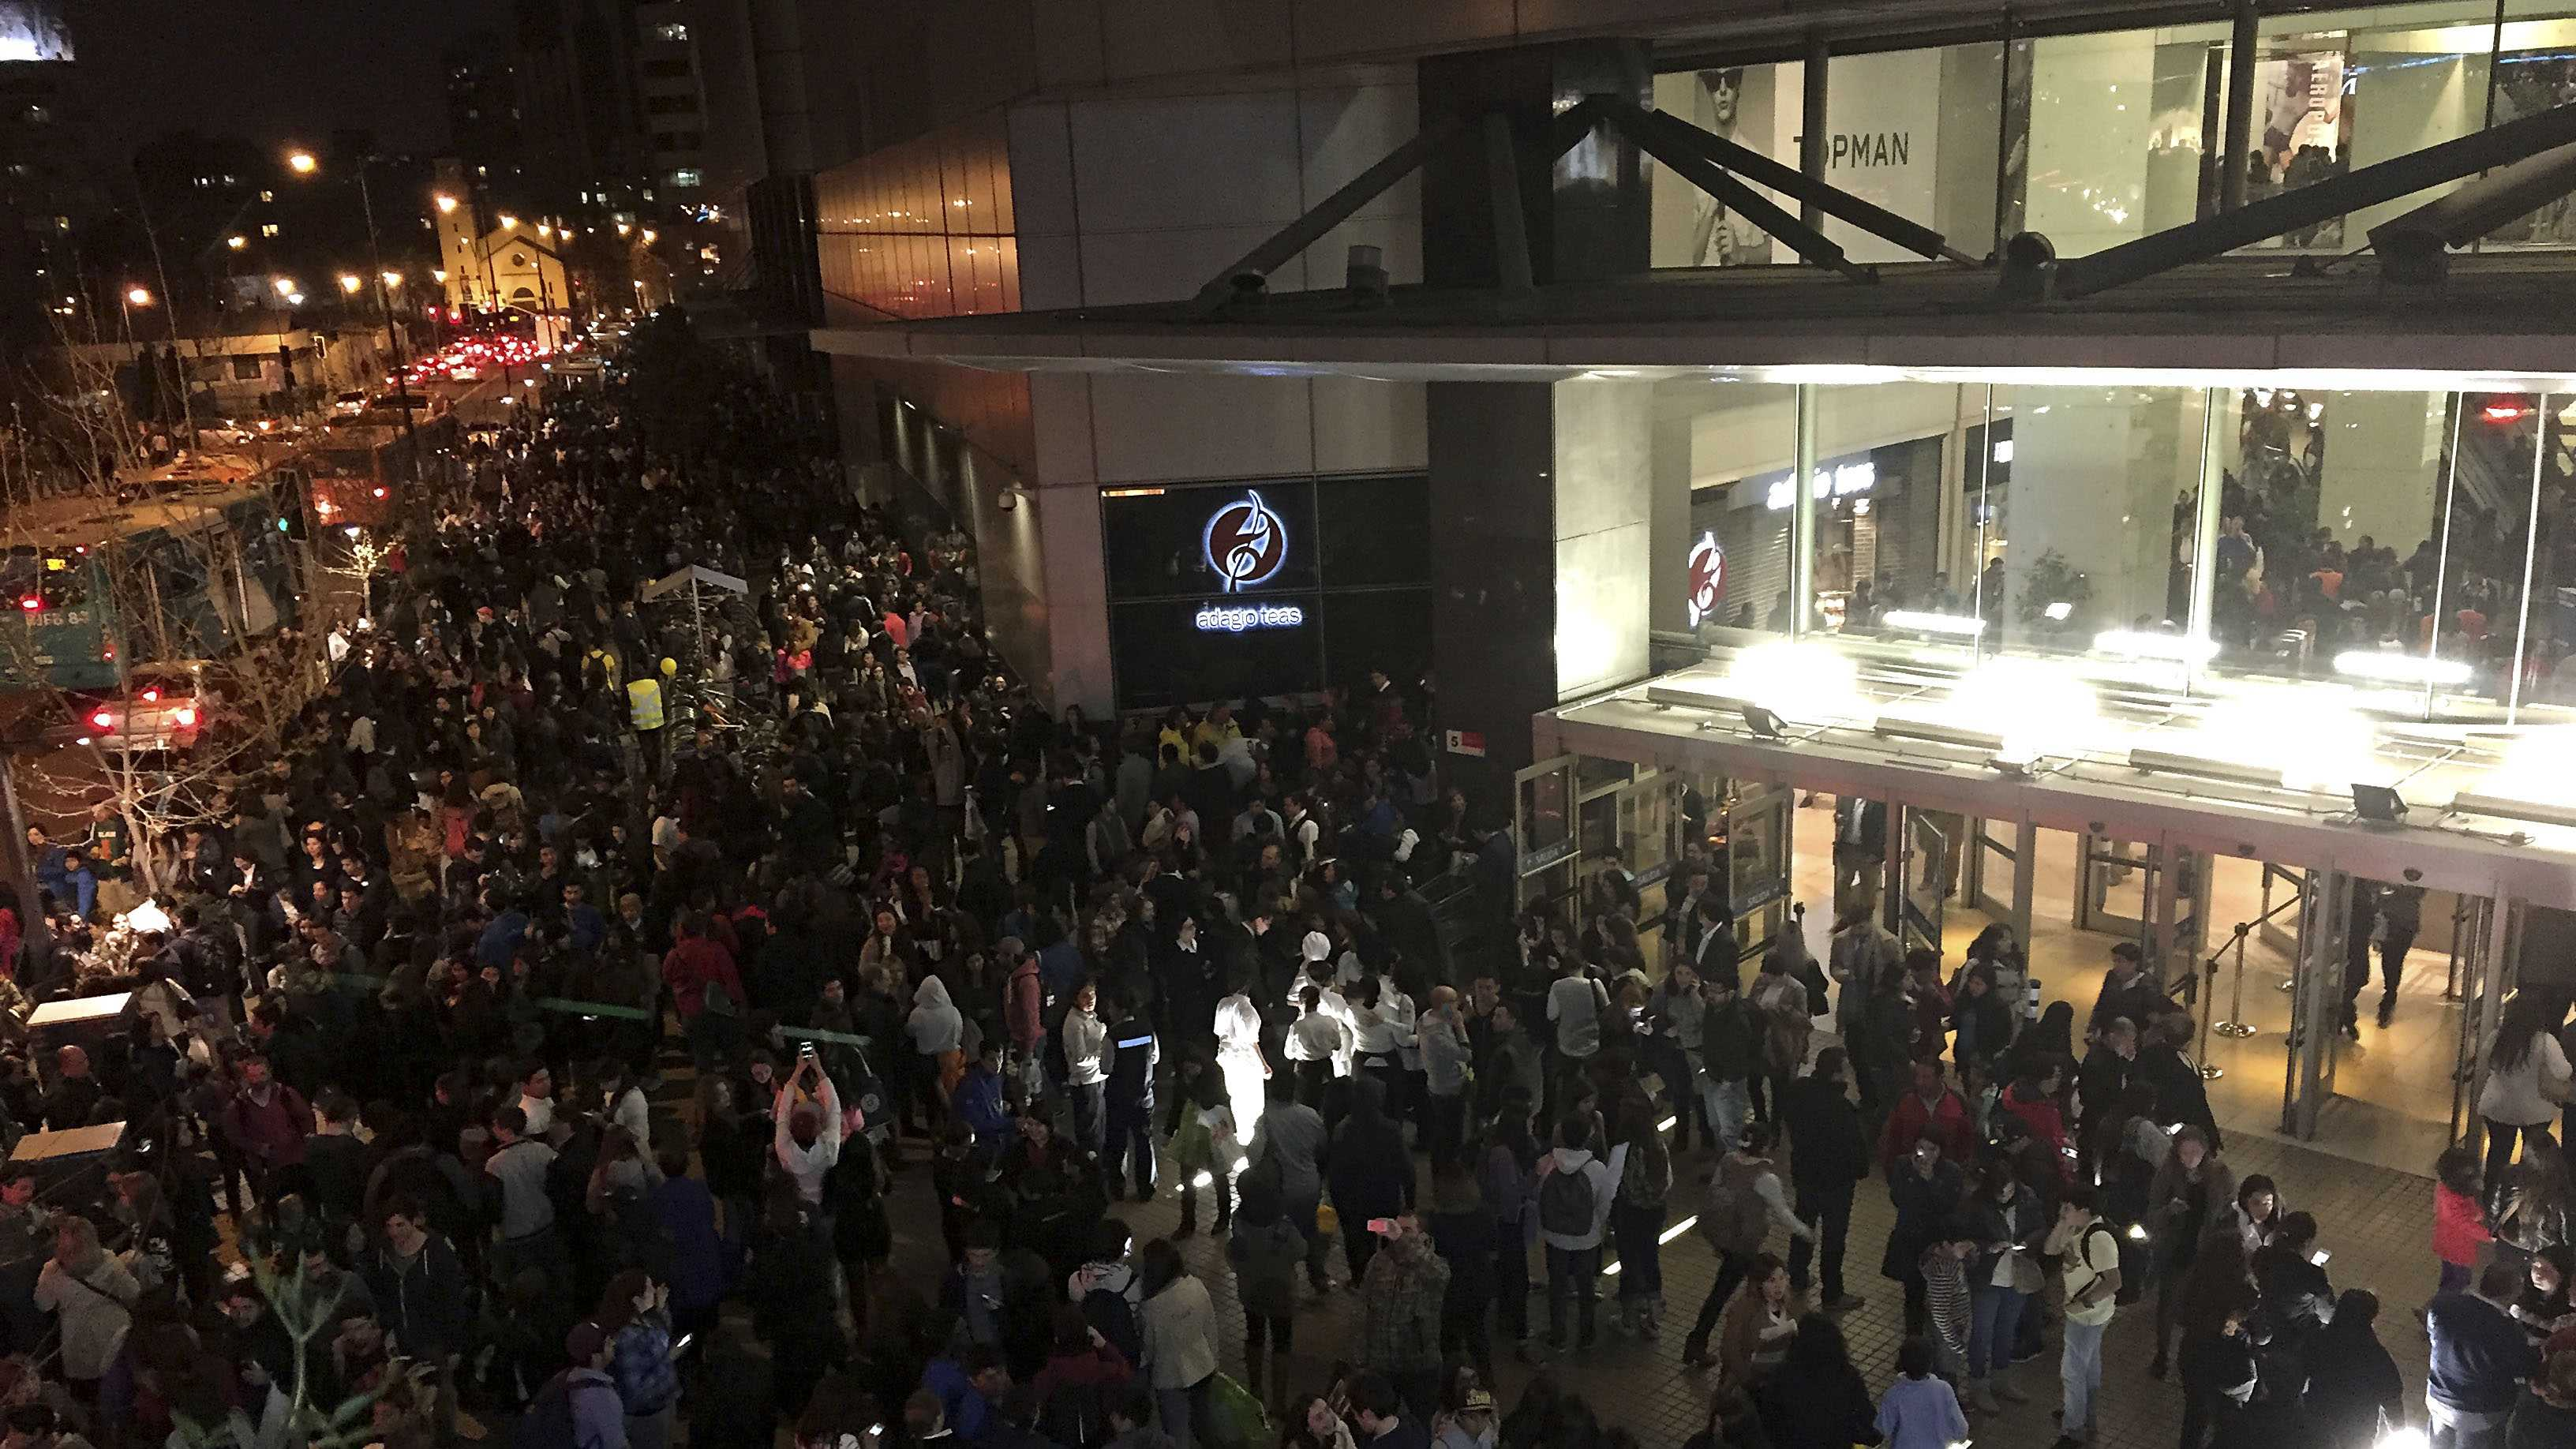 People evacuate a mall in Santiago after a powerful earthquake, in Santiago, Chile, Wednesday, Sept. 16, 2015. The magnitude-8.3 earthquake hit off Chile's northern coast causing buildings to sway in Santiago and other cities and sending people running into the streets. Authorities reported one death in a town north of the capital.(Nadia Perez/AGENCIA UNO via AP)